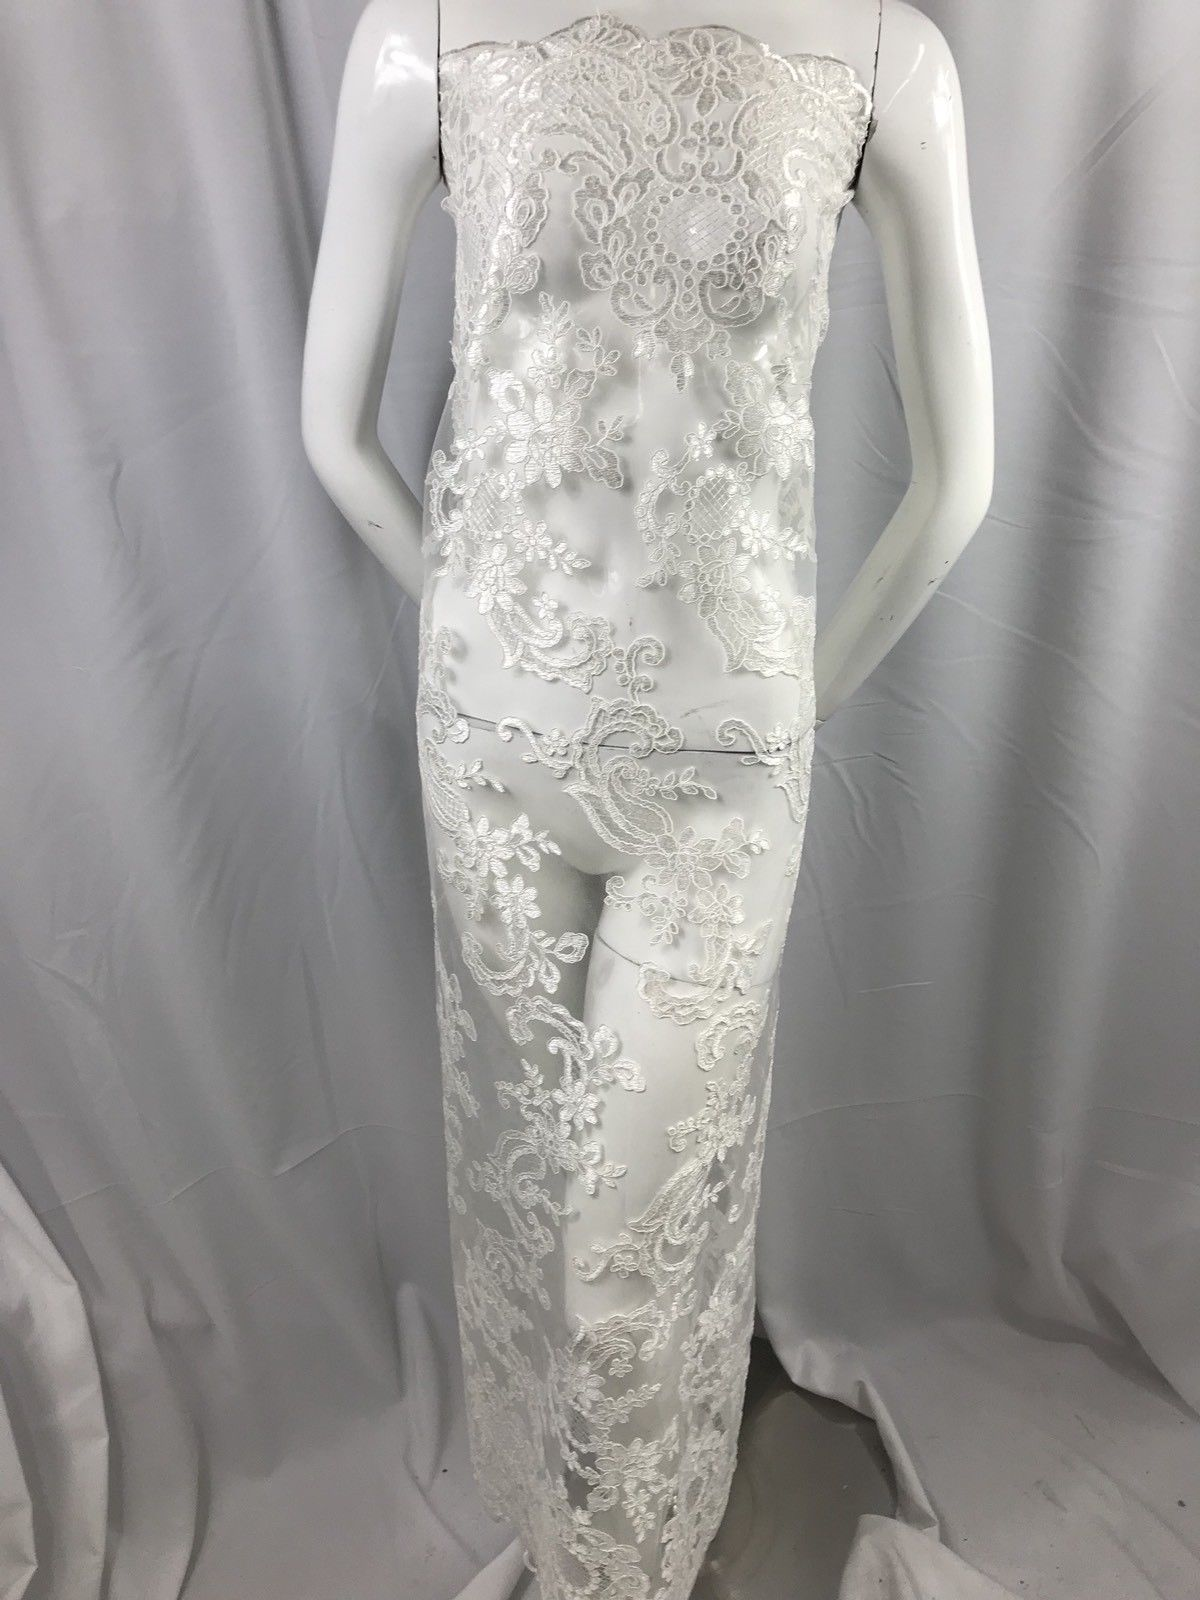 Lace fabric By The Yard Of White Flower Mesh Dress Embroidered Bridal Wedding - KINGDOM OF FABRICS